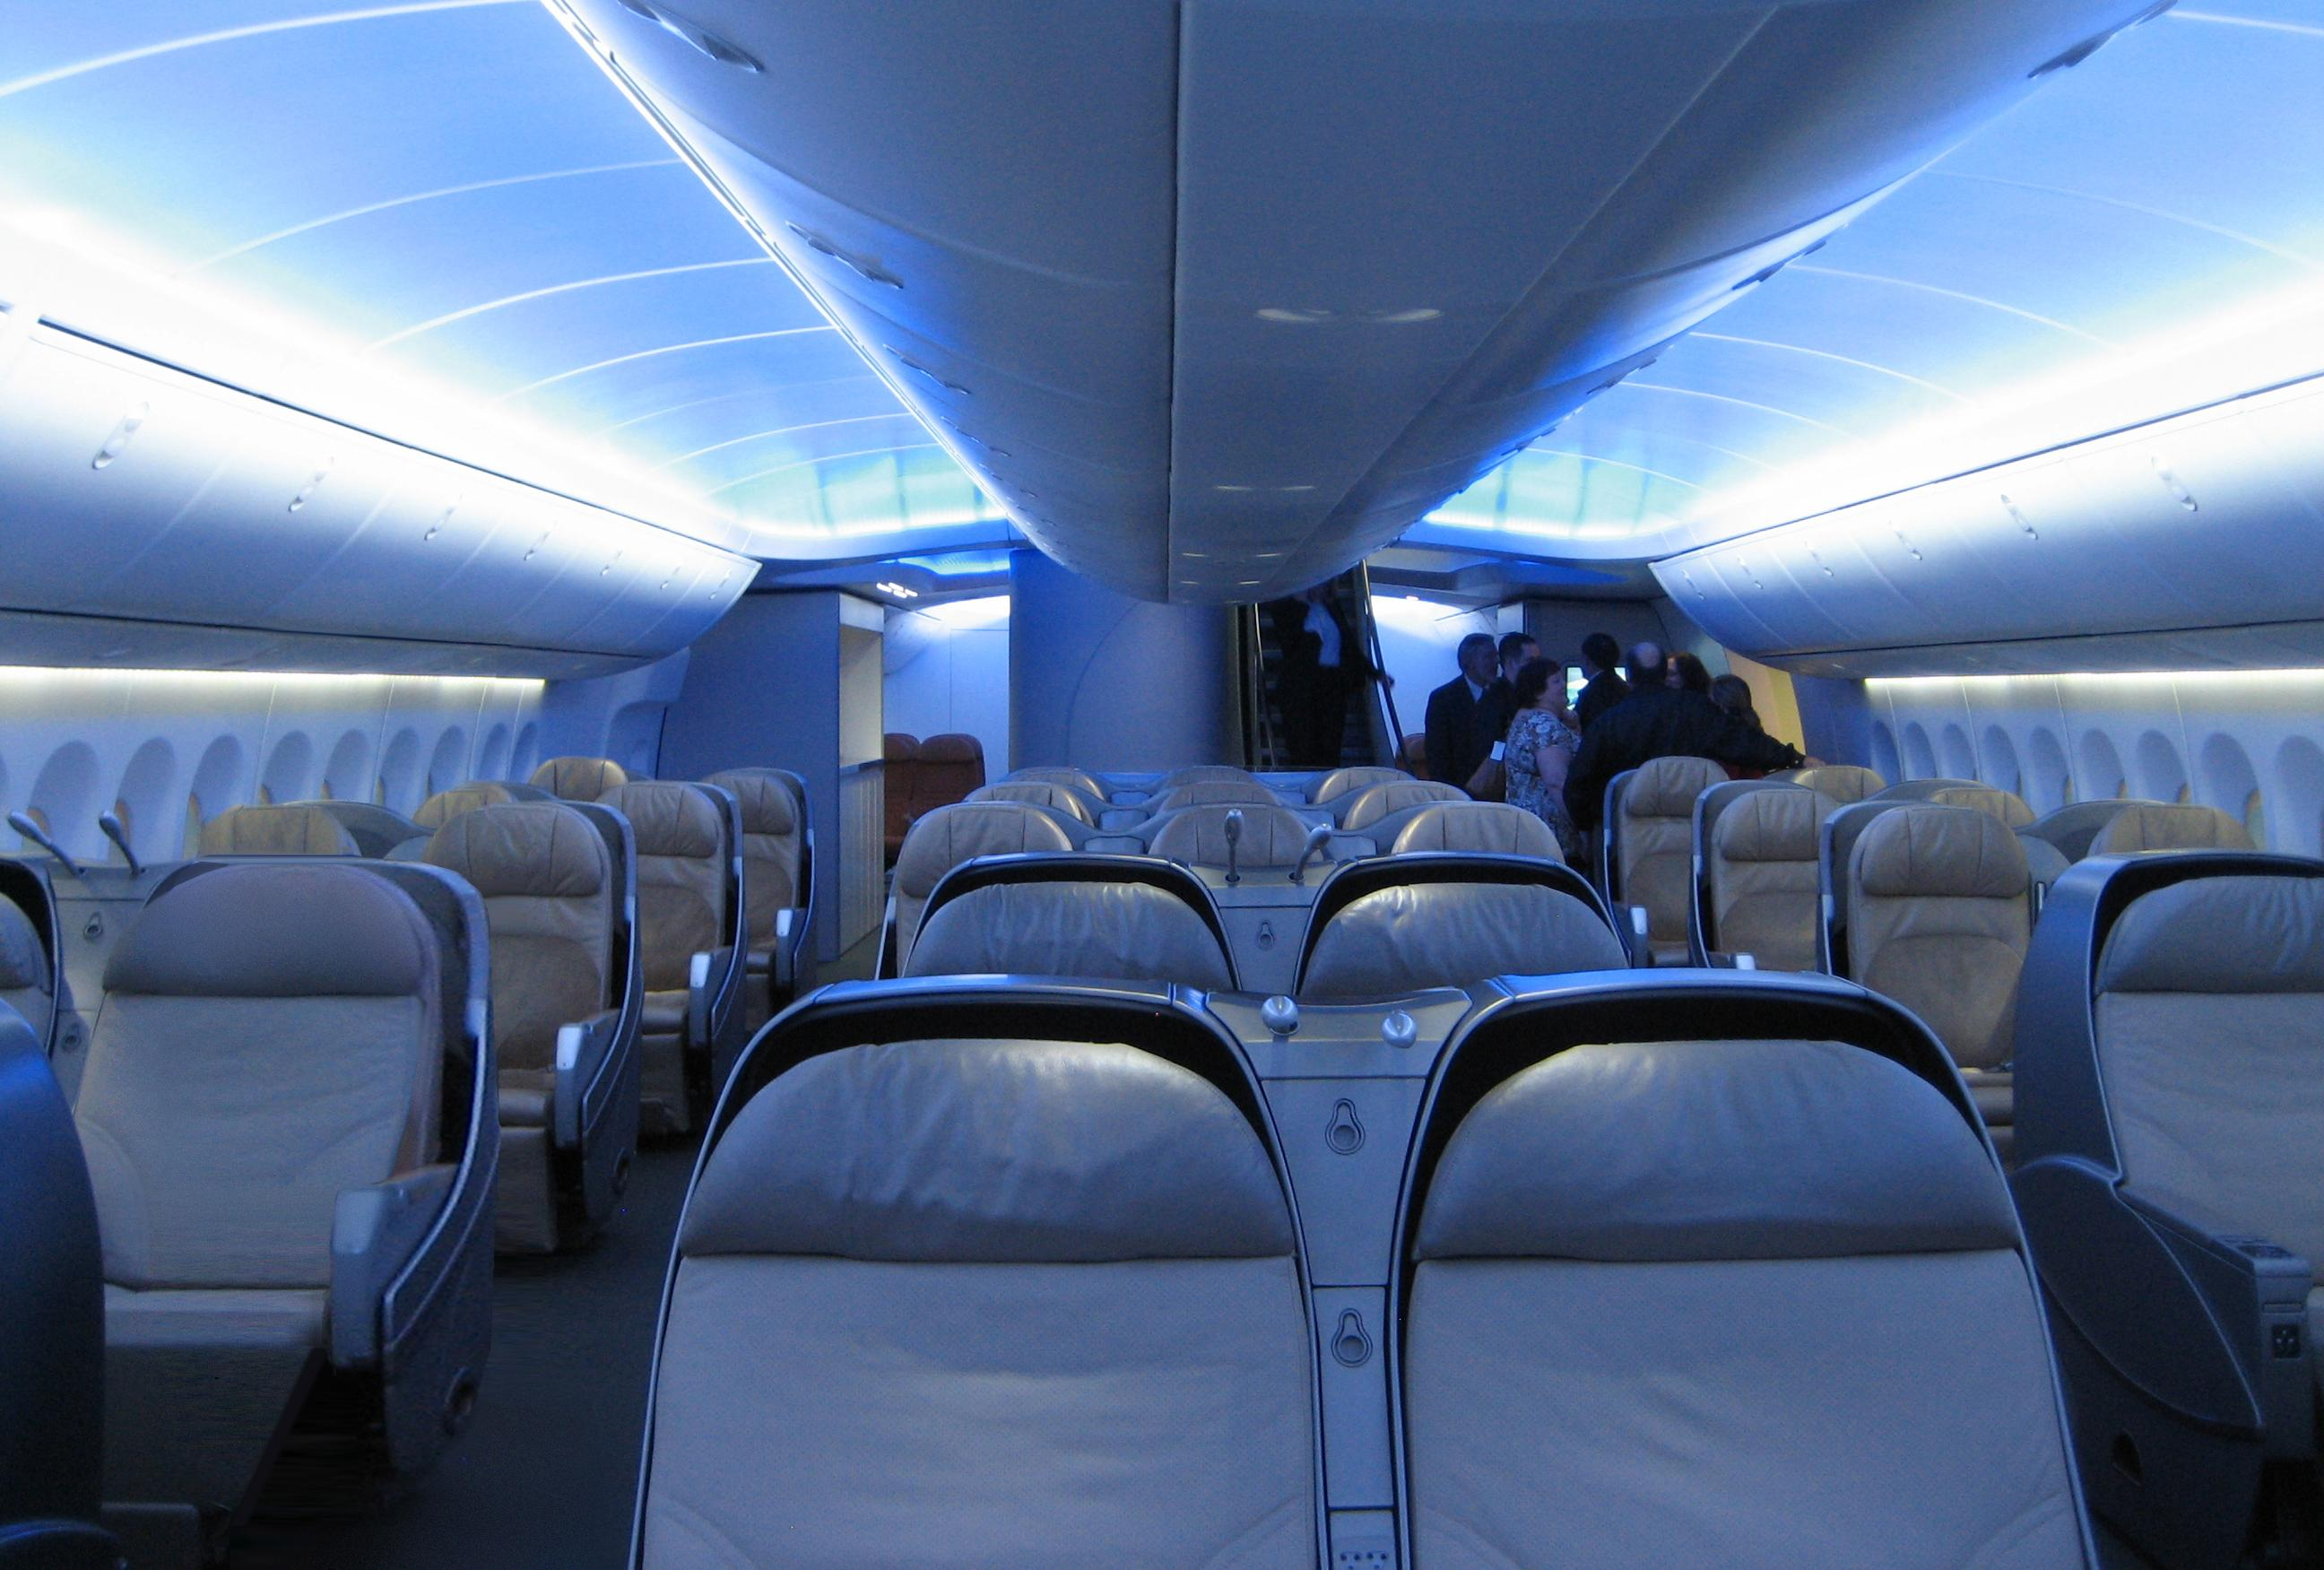 Endroits les plus sales dans l avion l o on ne le for Interieur avion